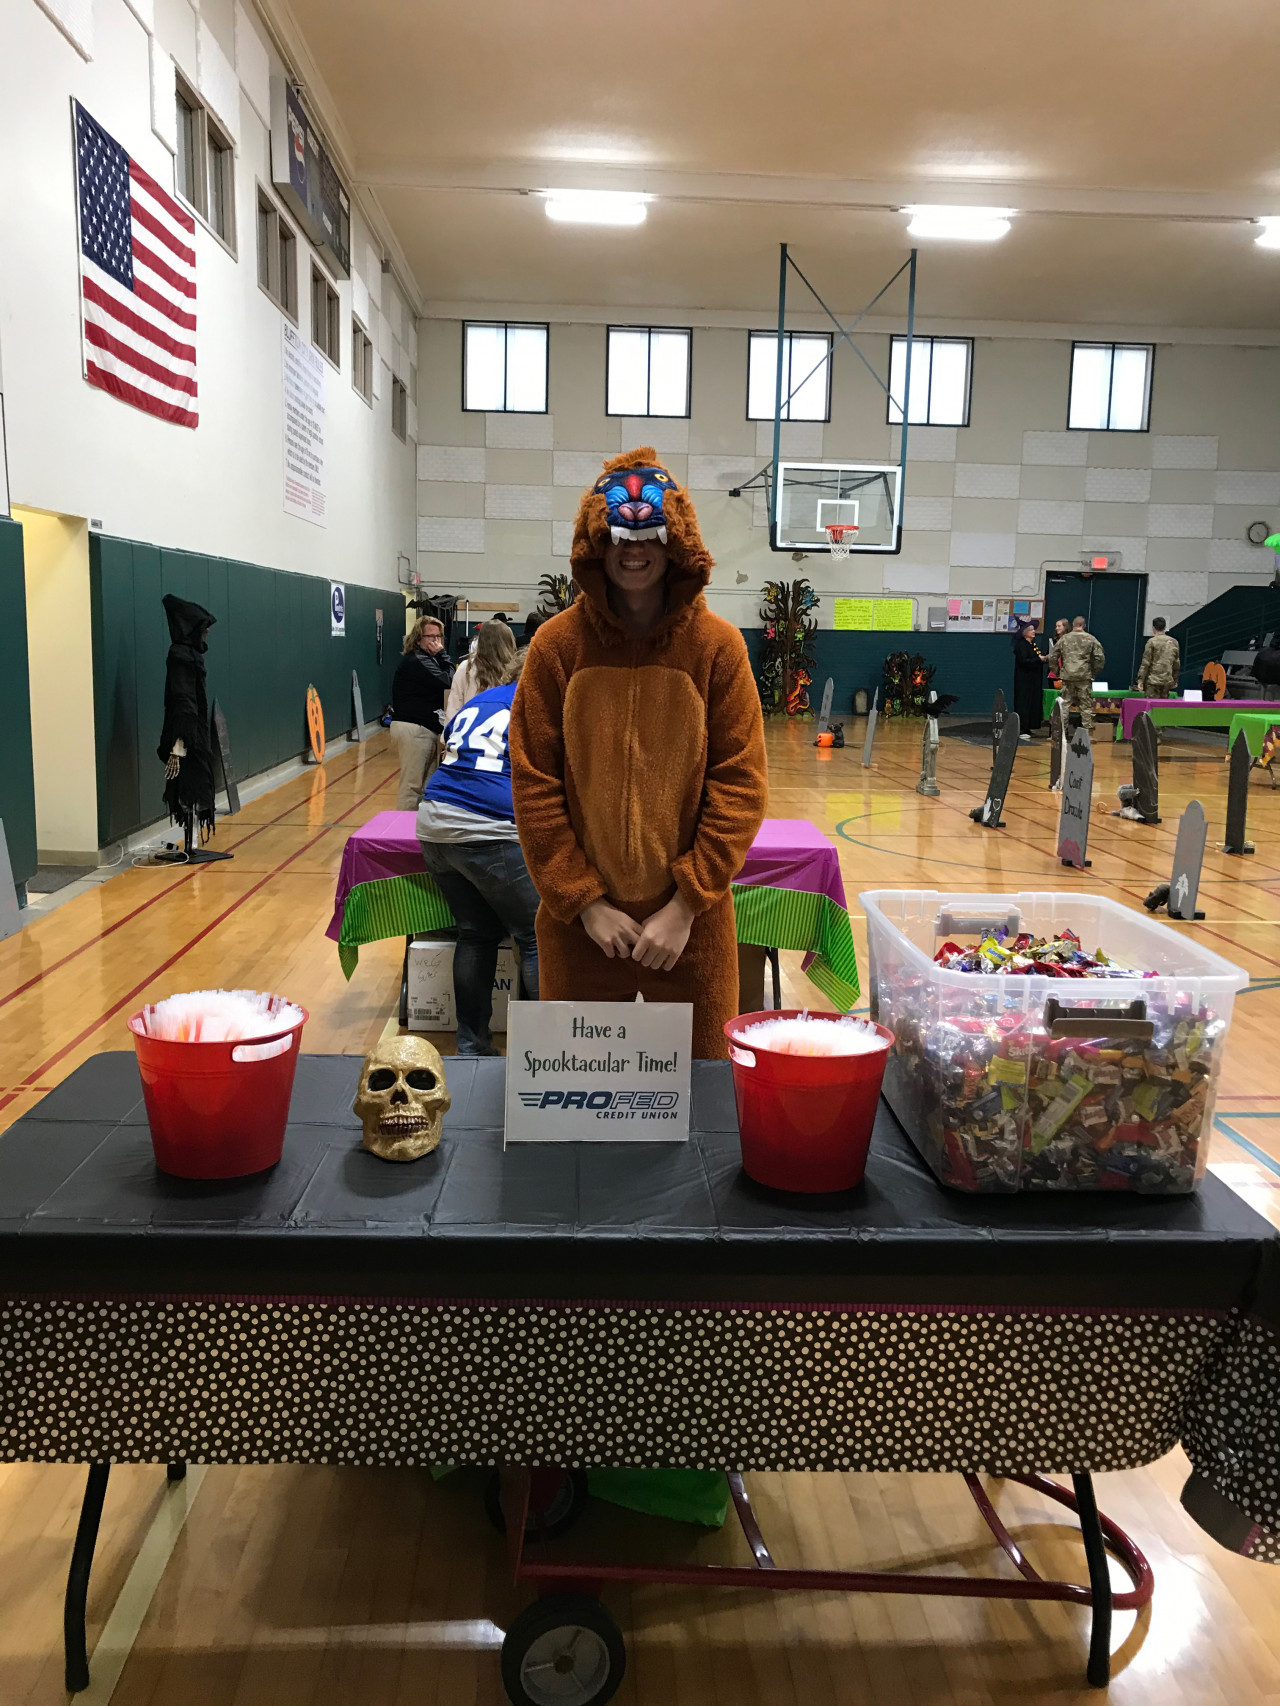 A boy in a chimpanzee costume standing behind a table passing out candy for Halloween in a gymnasium.